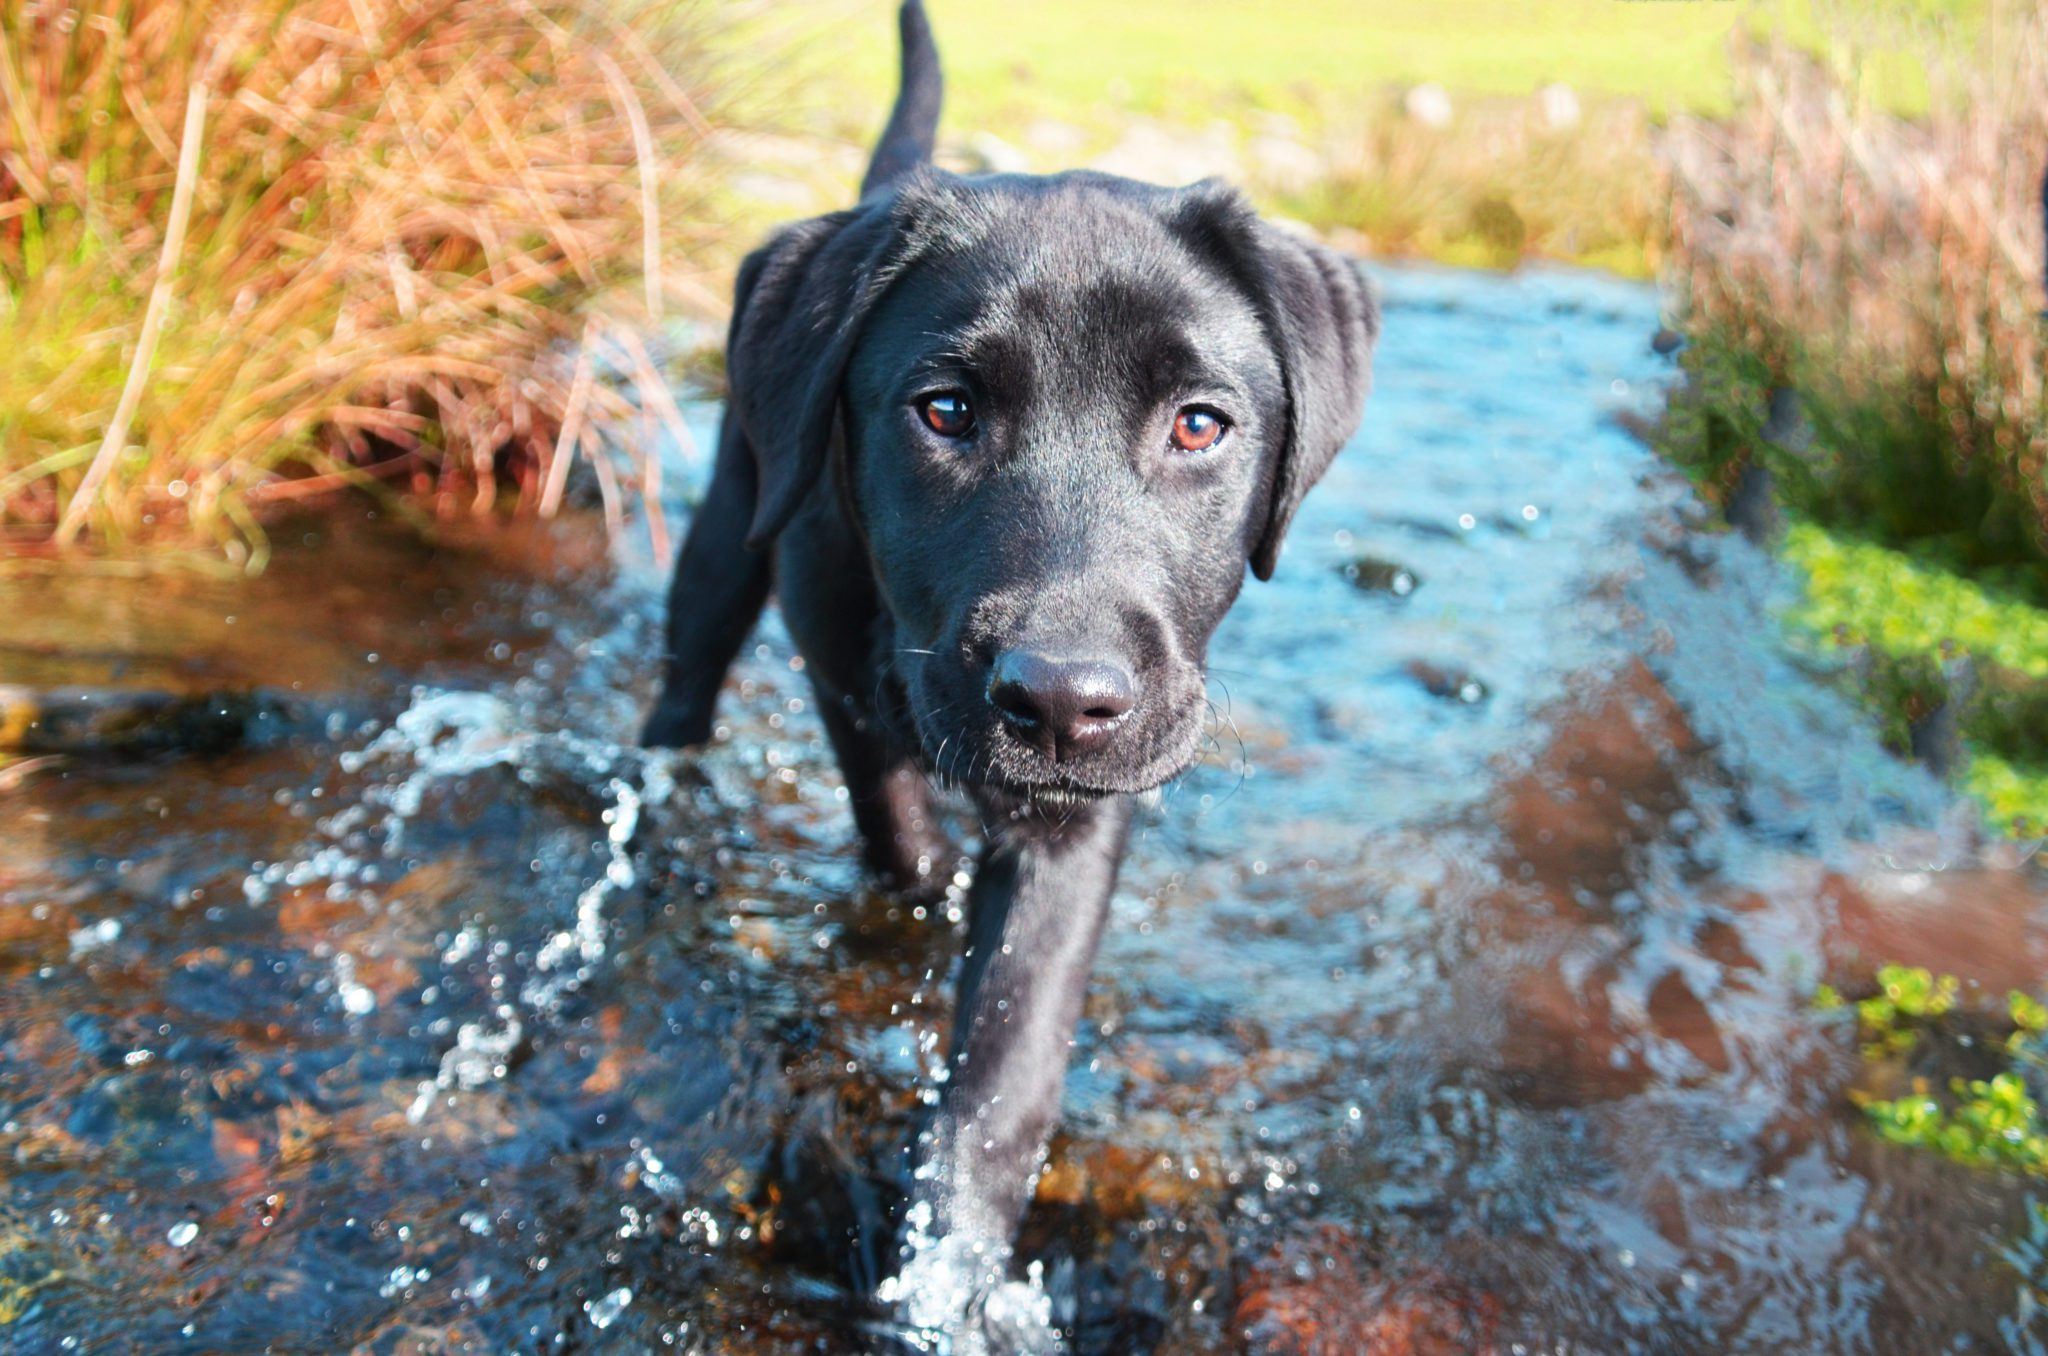 Labrador - the most popular dog breed in the UK